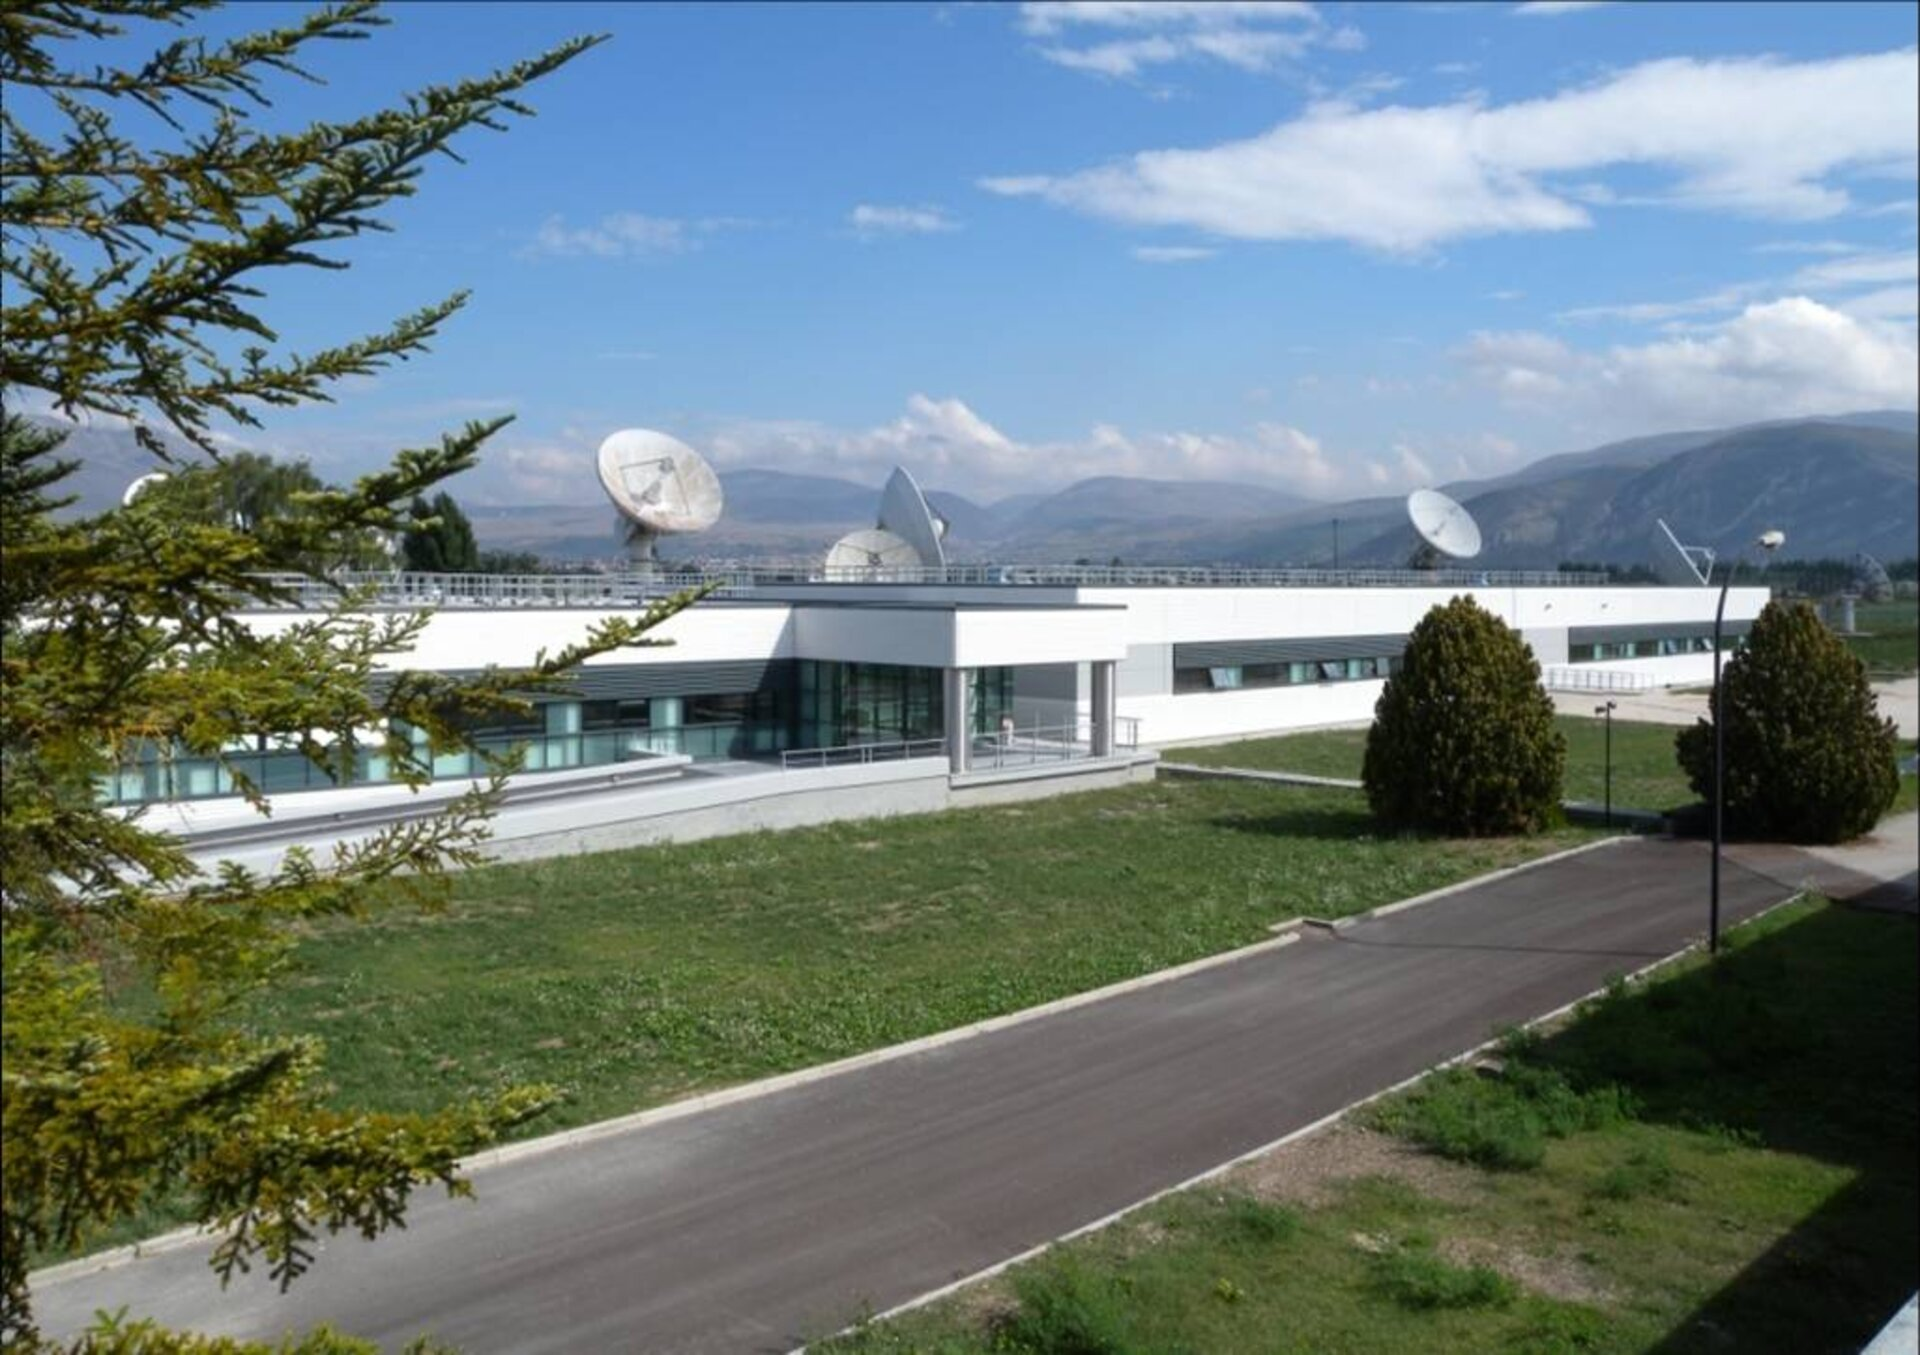 Galileo Control Centre in Fucino